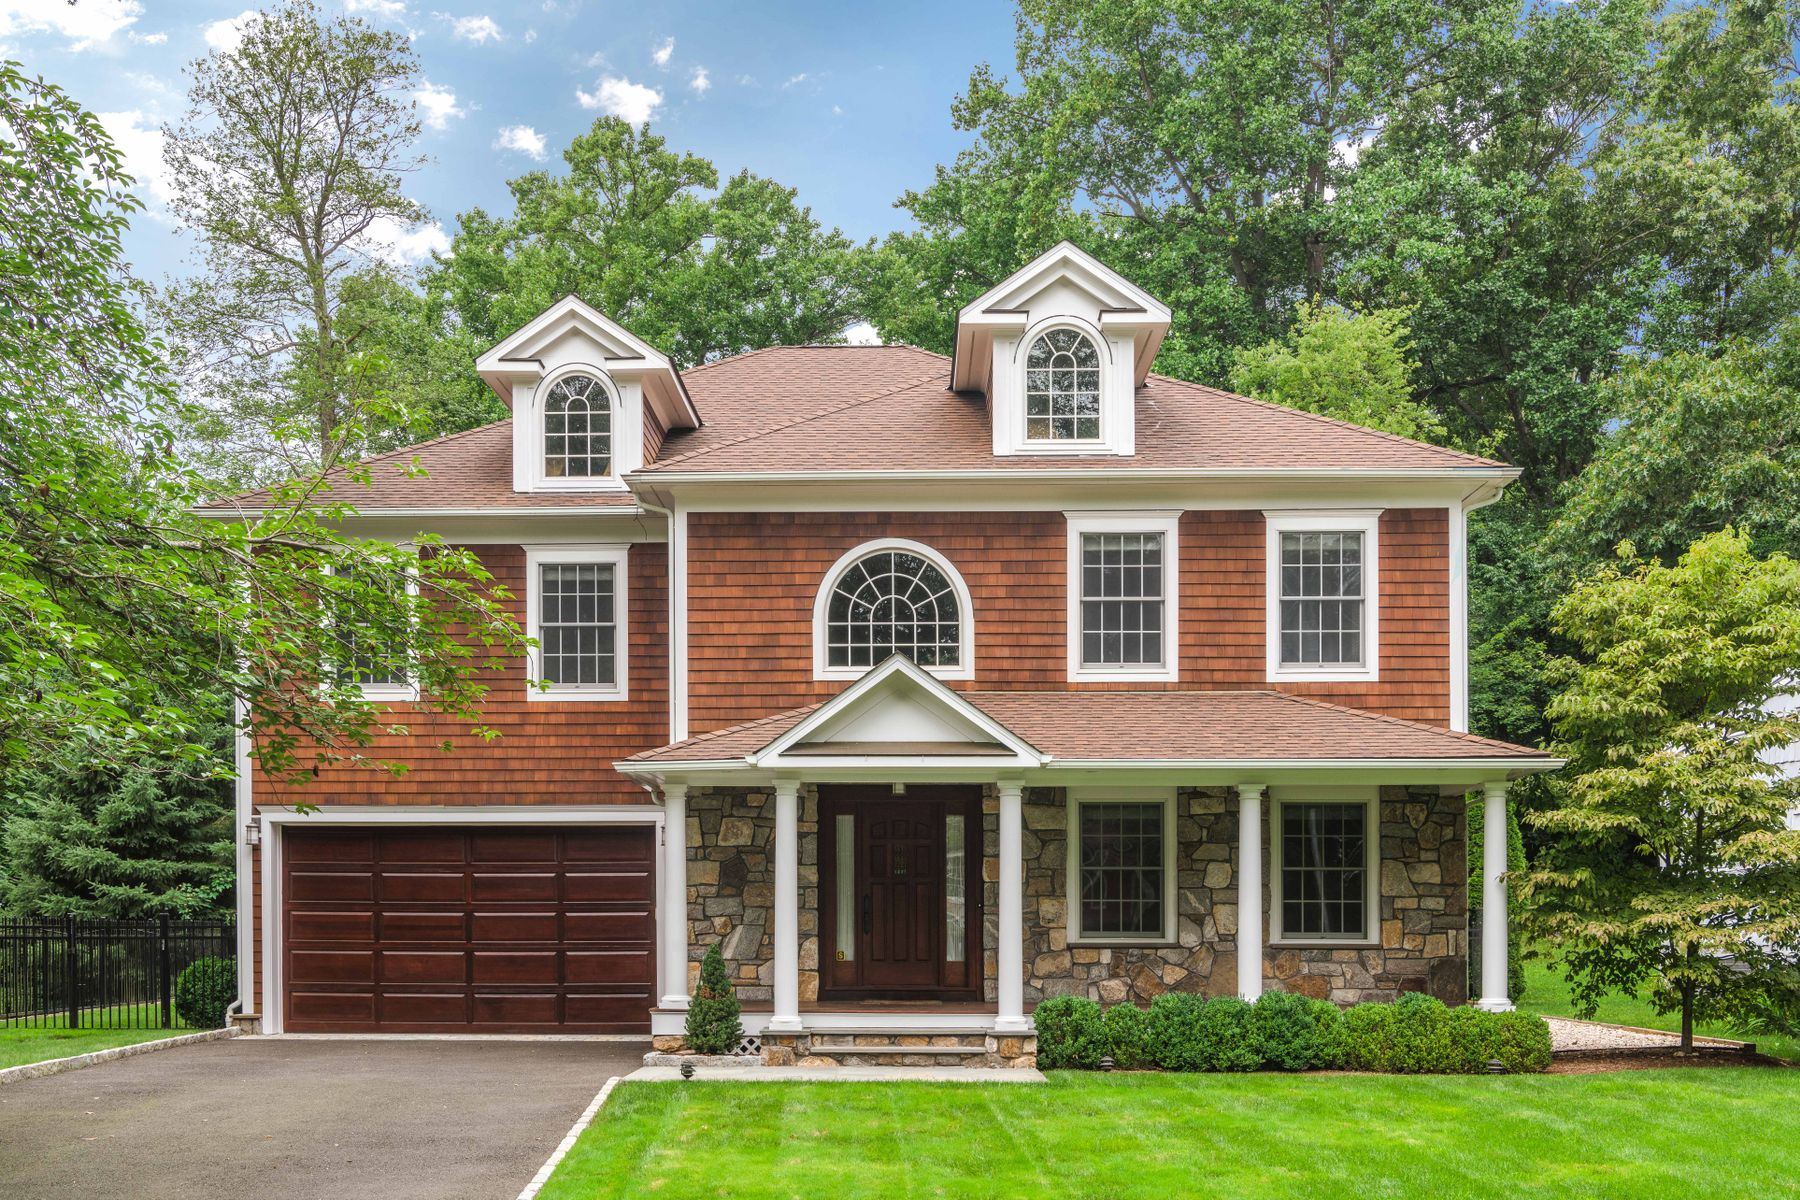 Single Family Home for Sale at North Mianus School District, Cul-De-Sac 66 Gregory Road Cos Cob, Connecticut 06807 United States